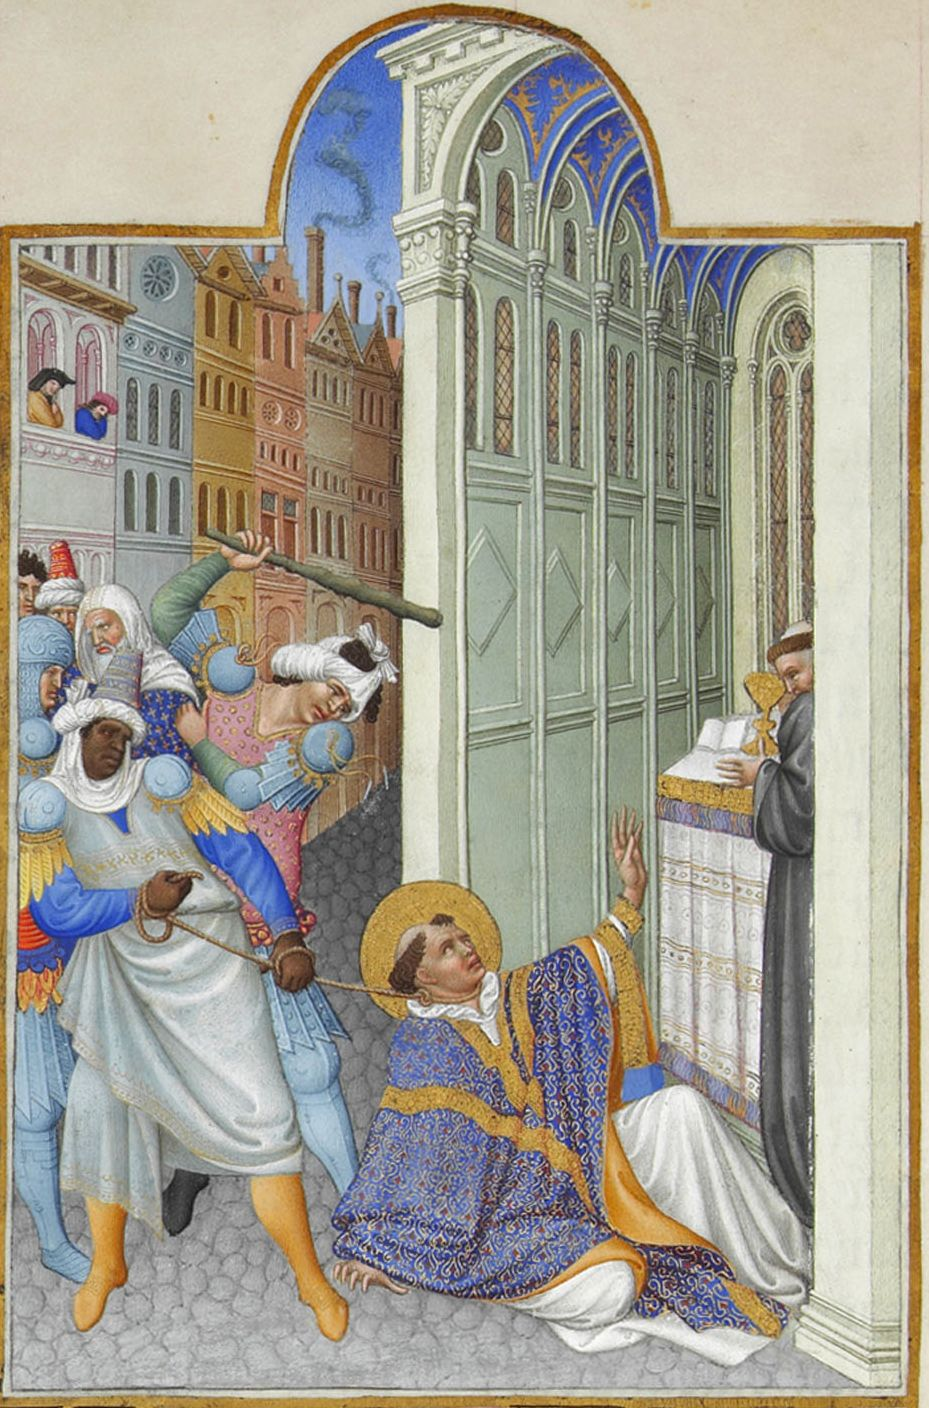 Folio_19v_-_The_Martyrdom_of_Saint_Mark.jpg